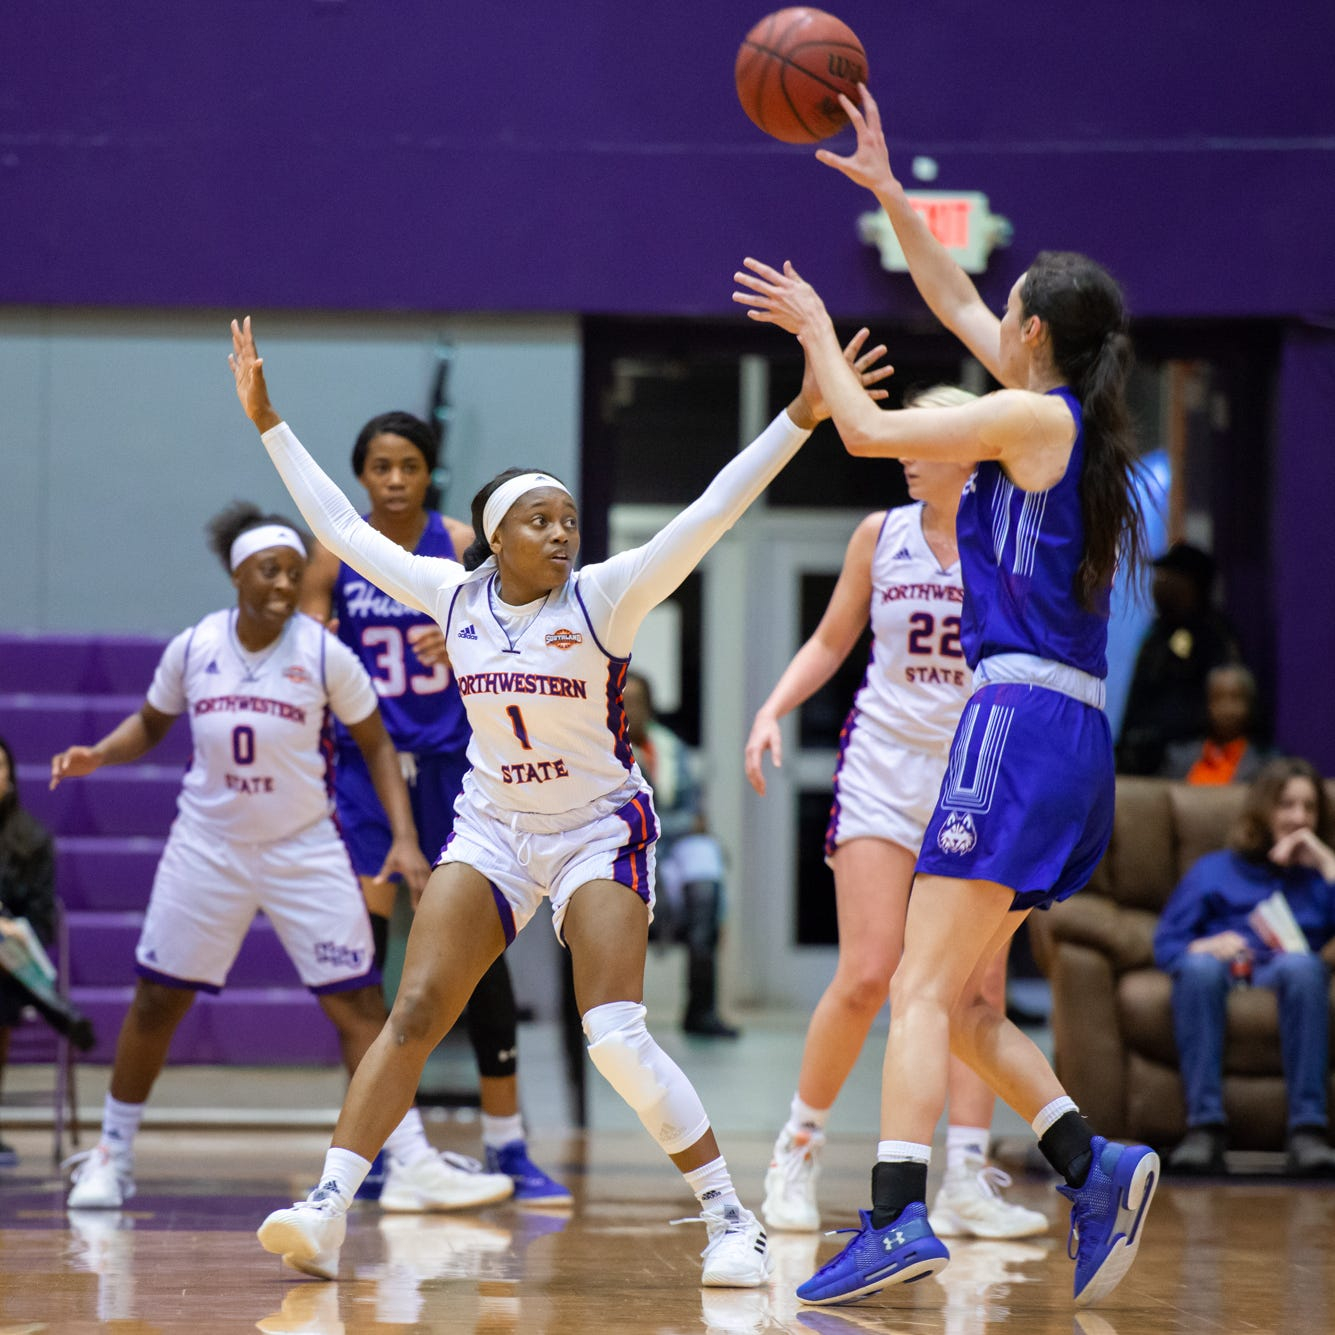 College roundup: NSU women down Houston Baptist